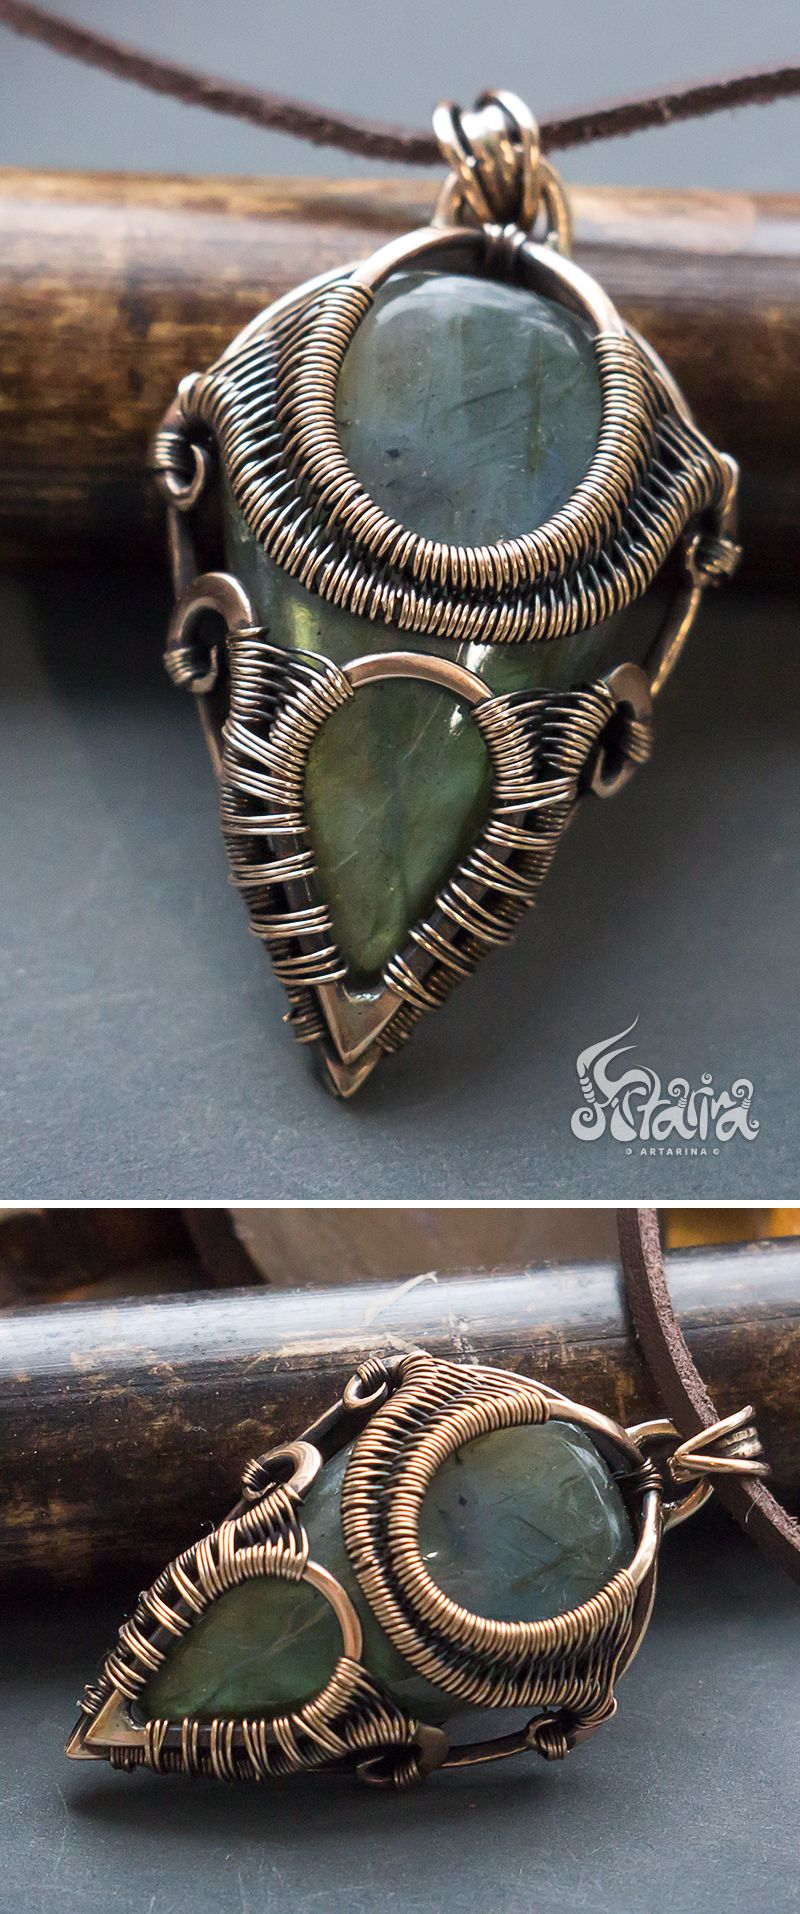 Bronze wire wrap pendant with labradorite